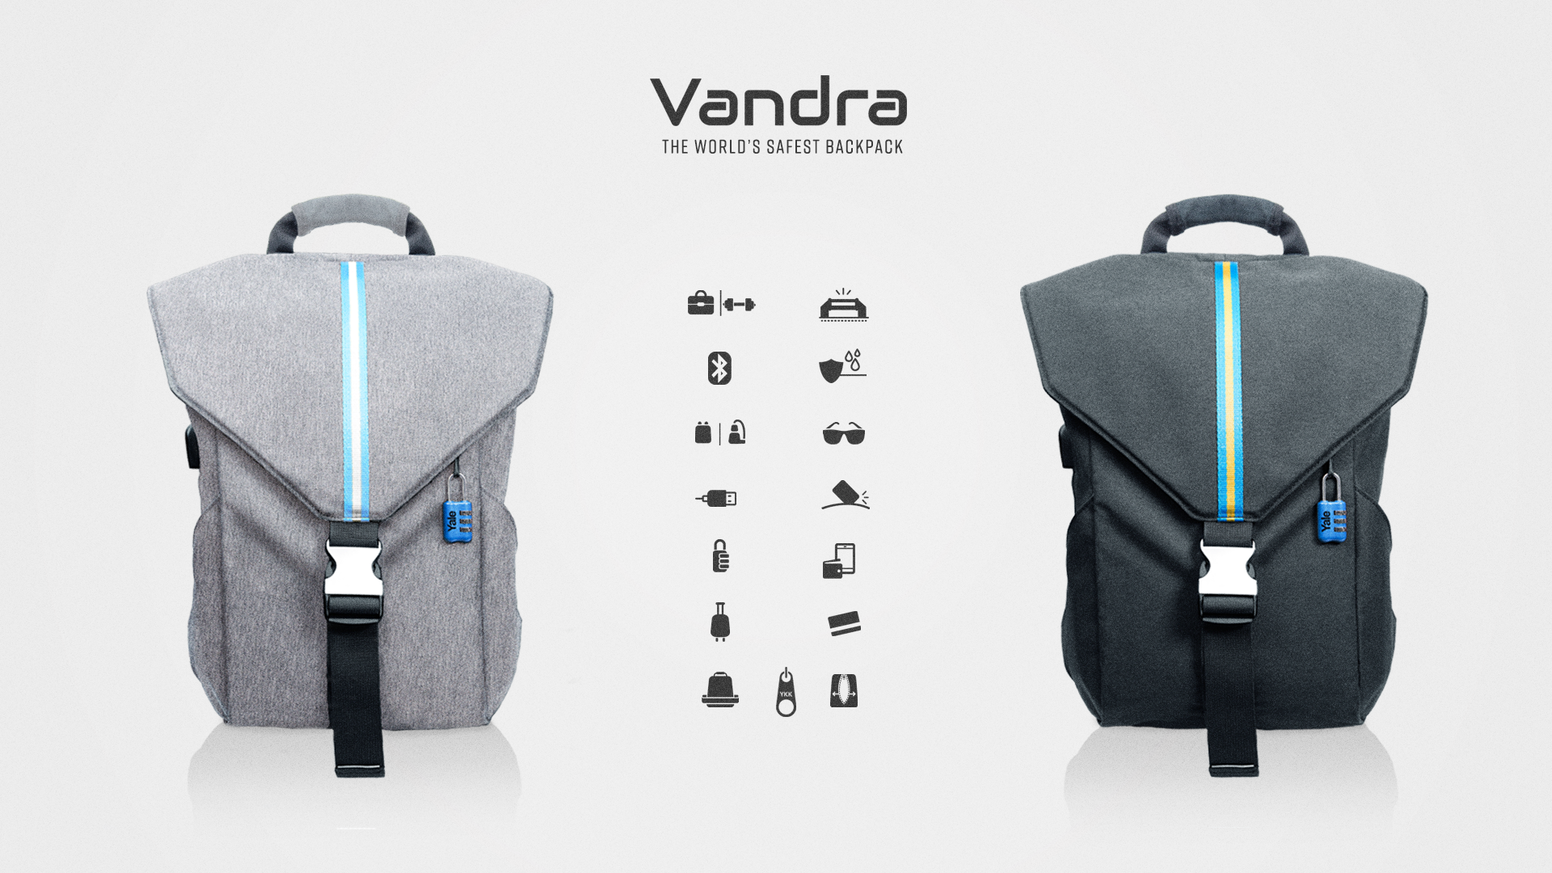 Introducing Vandra - The world s safest backpack by Vandra the smart ... 00c75b21f5d33